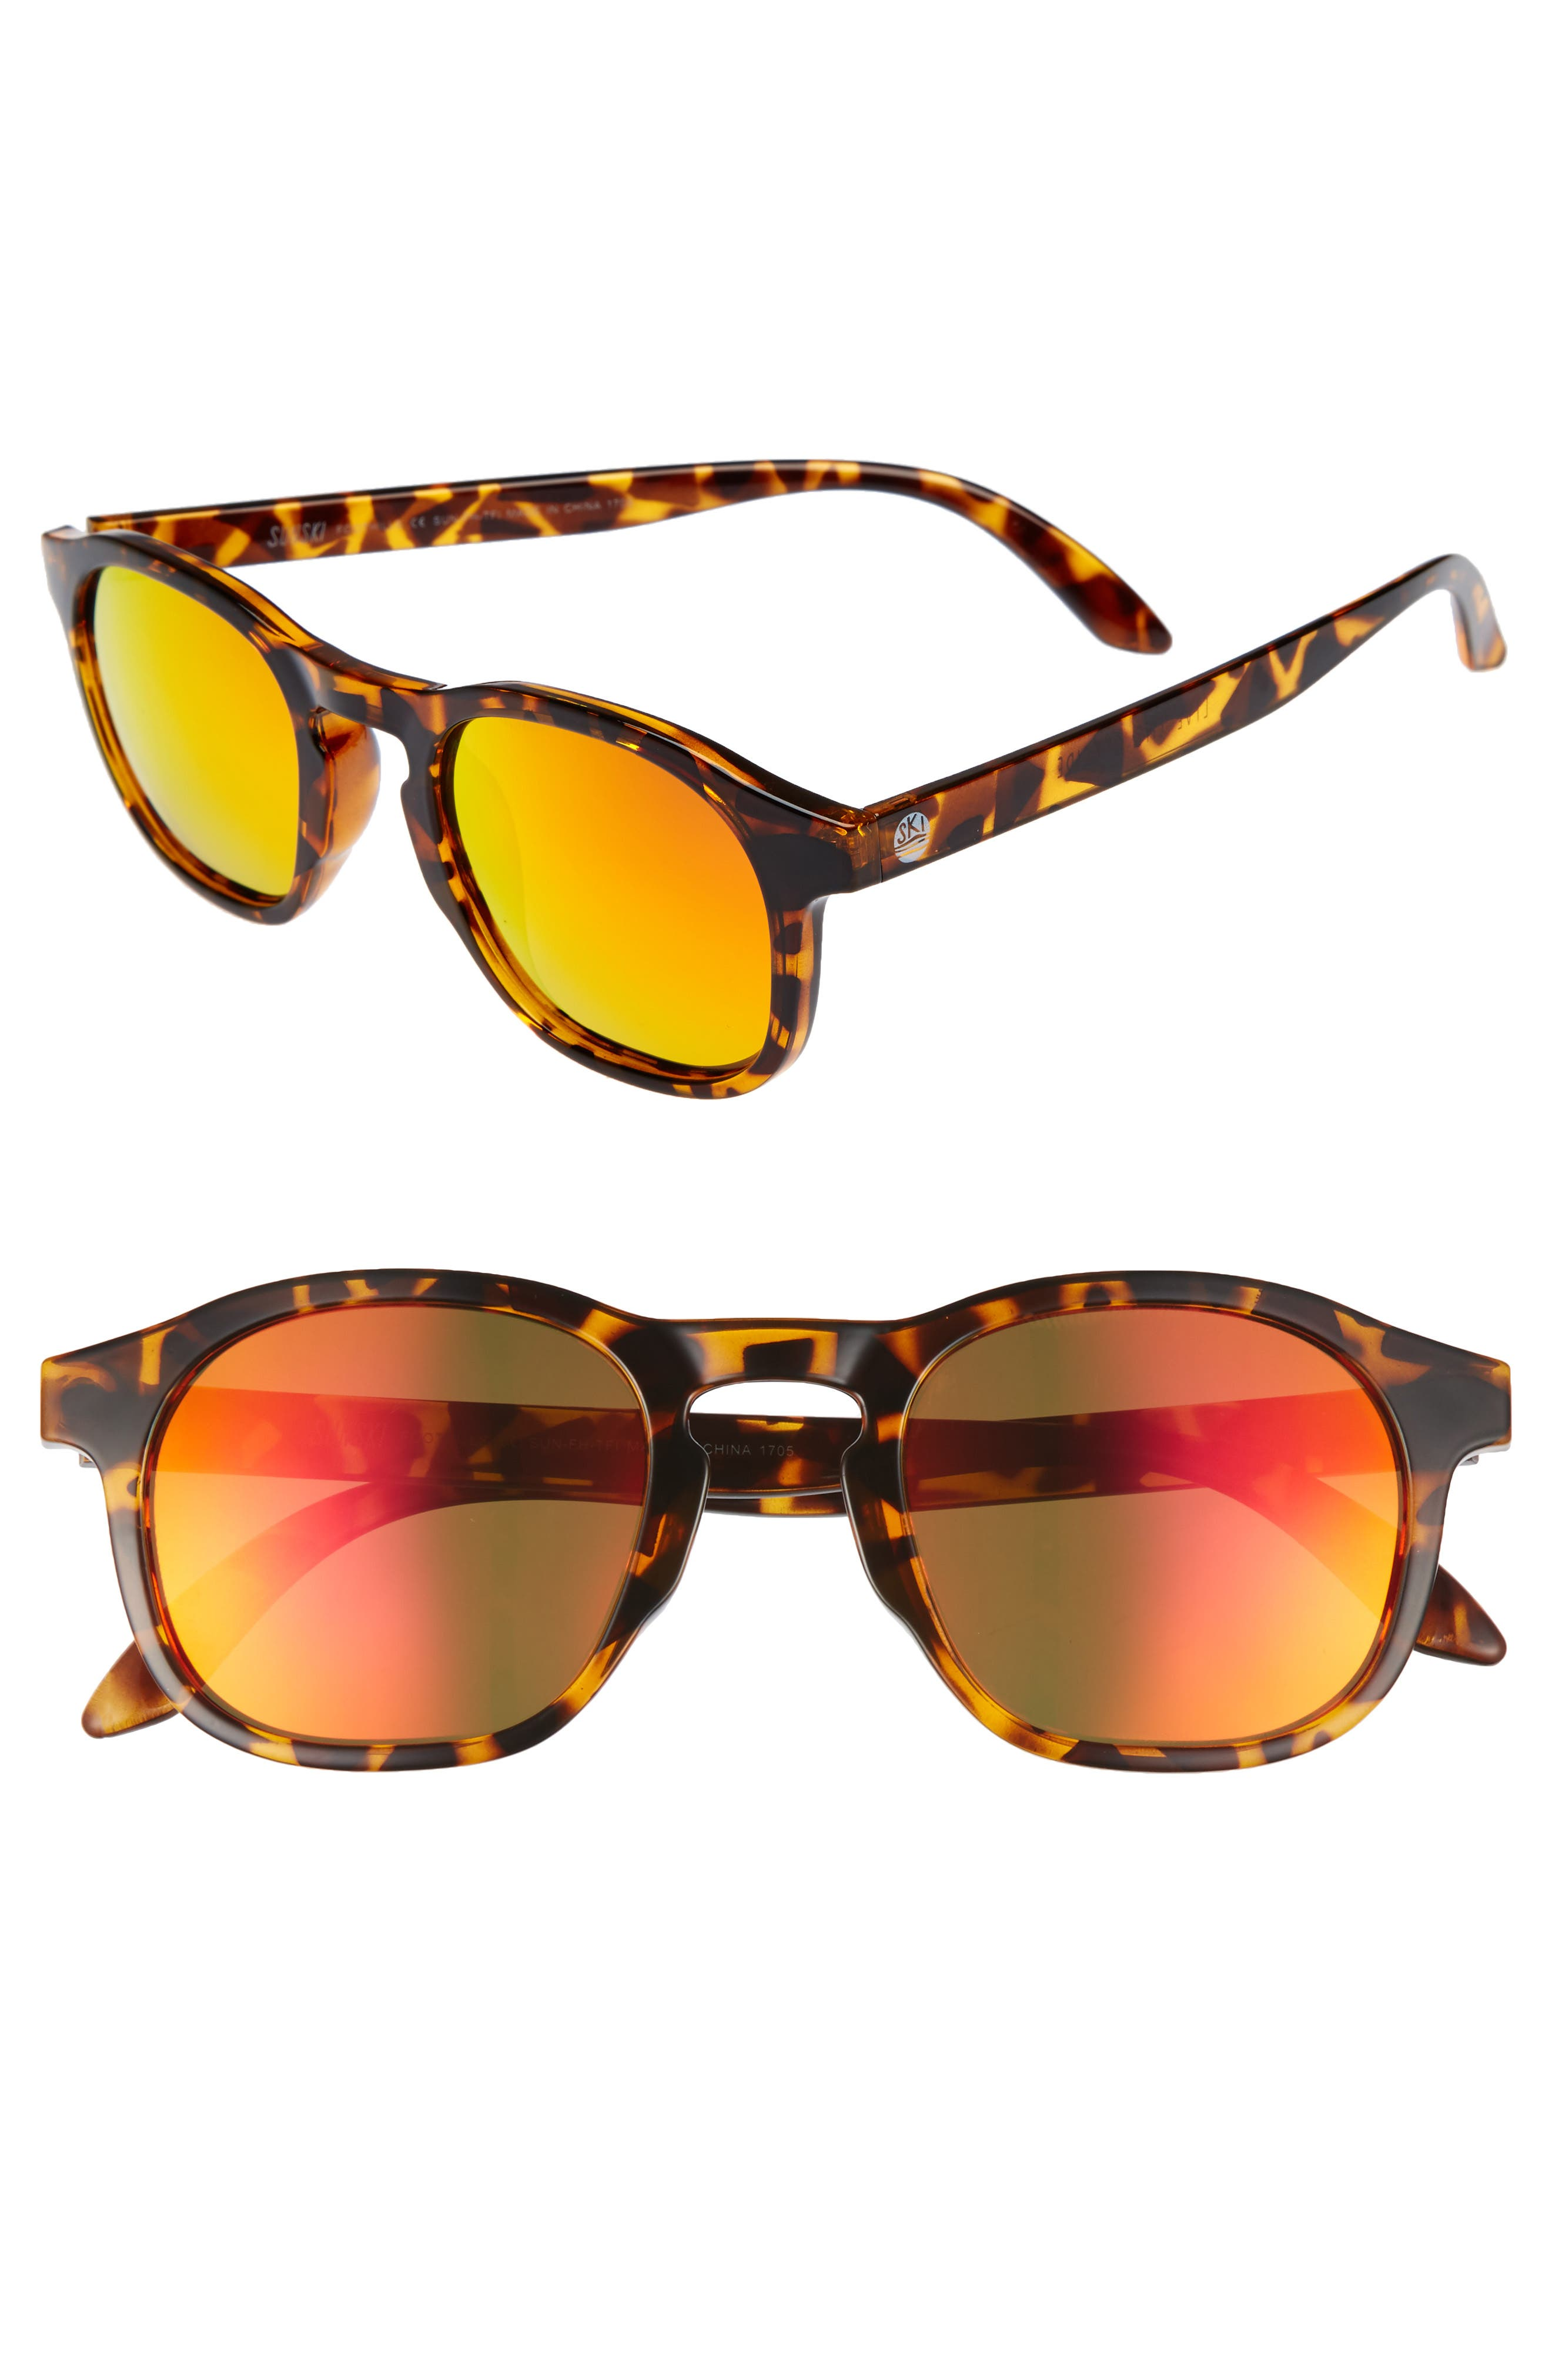 Main Image - Sunski Foothills 47mm Polarized Sunglasses